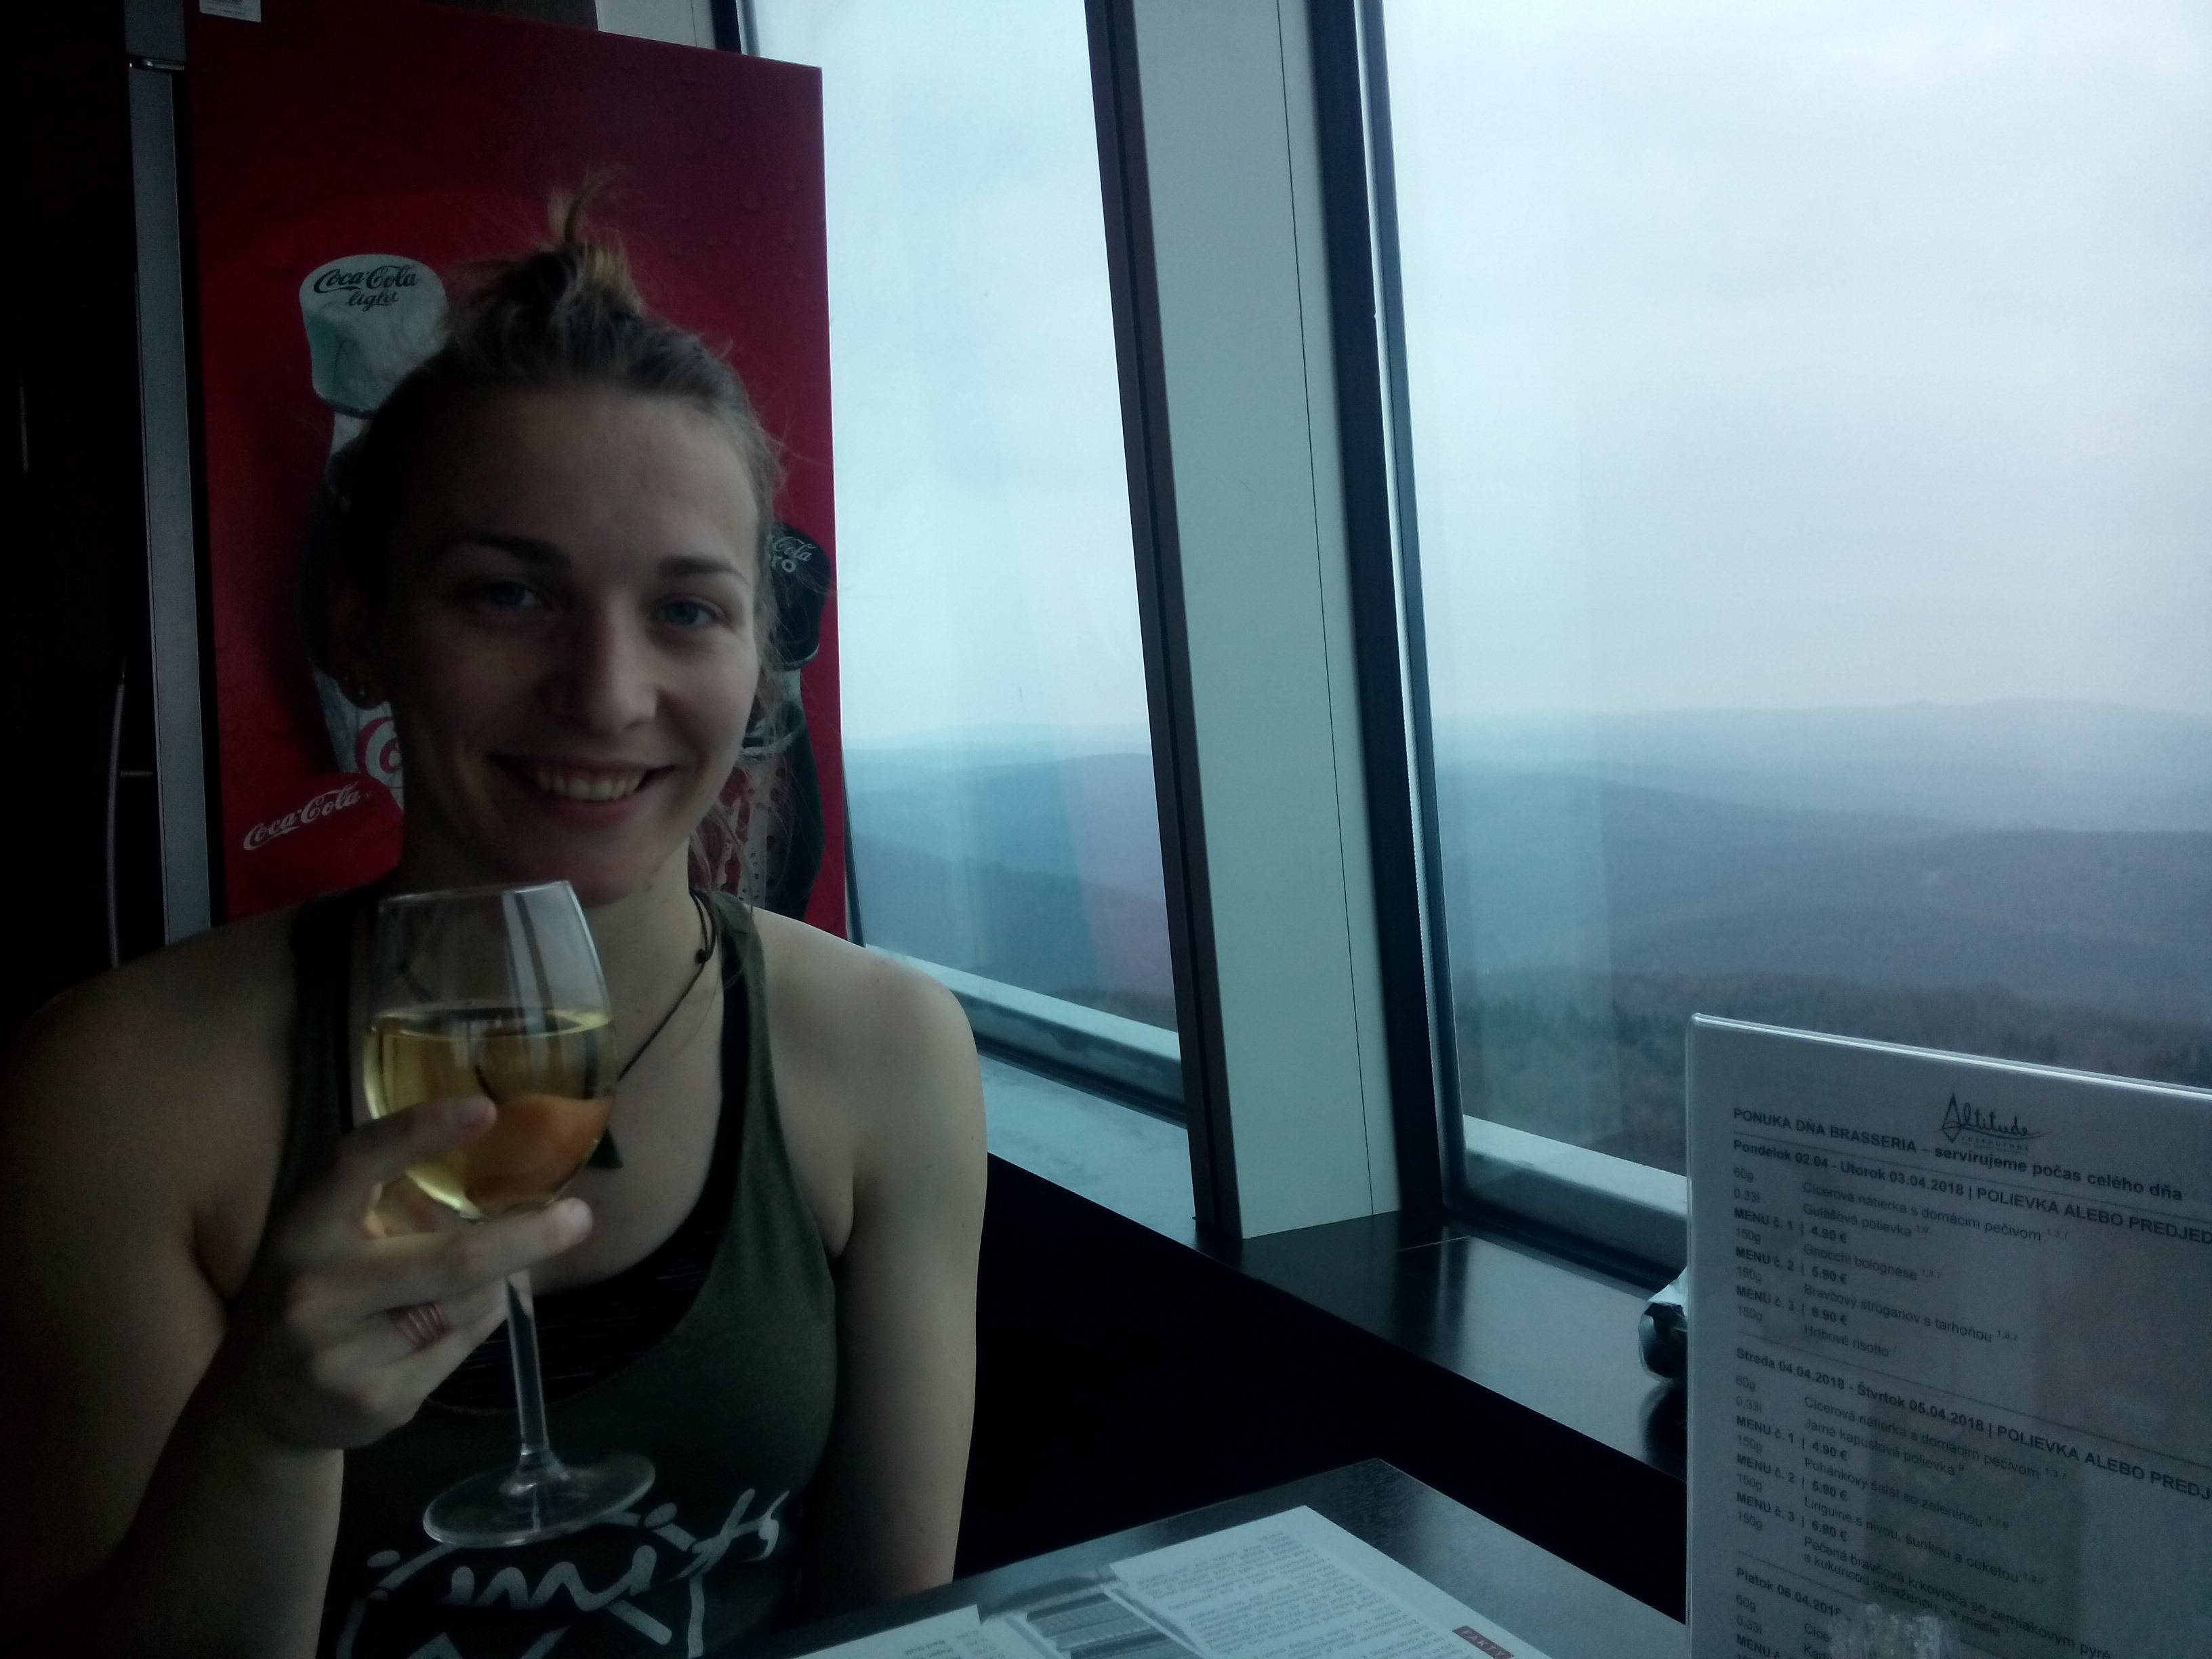 A woman holds a glass of white wine beside a window, with a view to misty hills